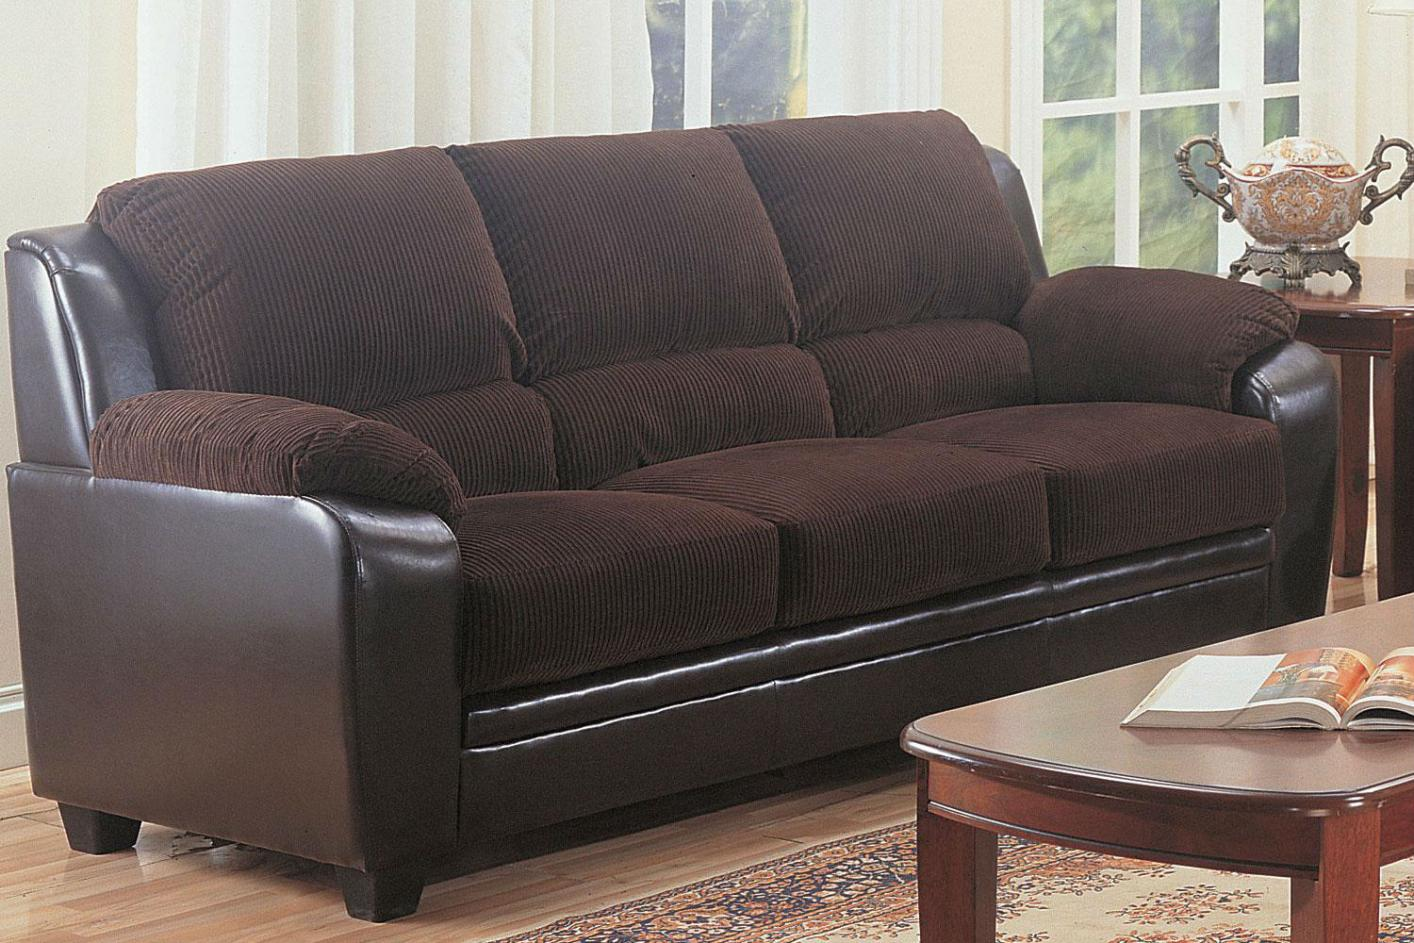 Chocolate Corduroy Sofa Monika Brown Leather Sofa